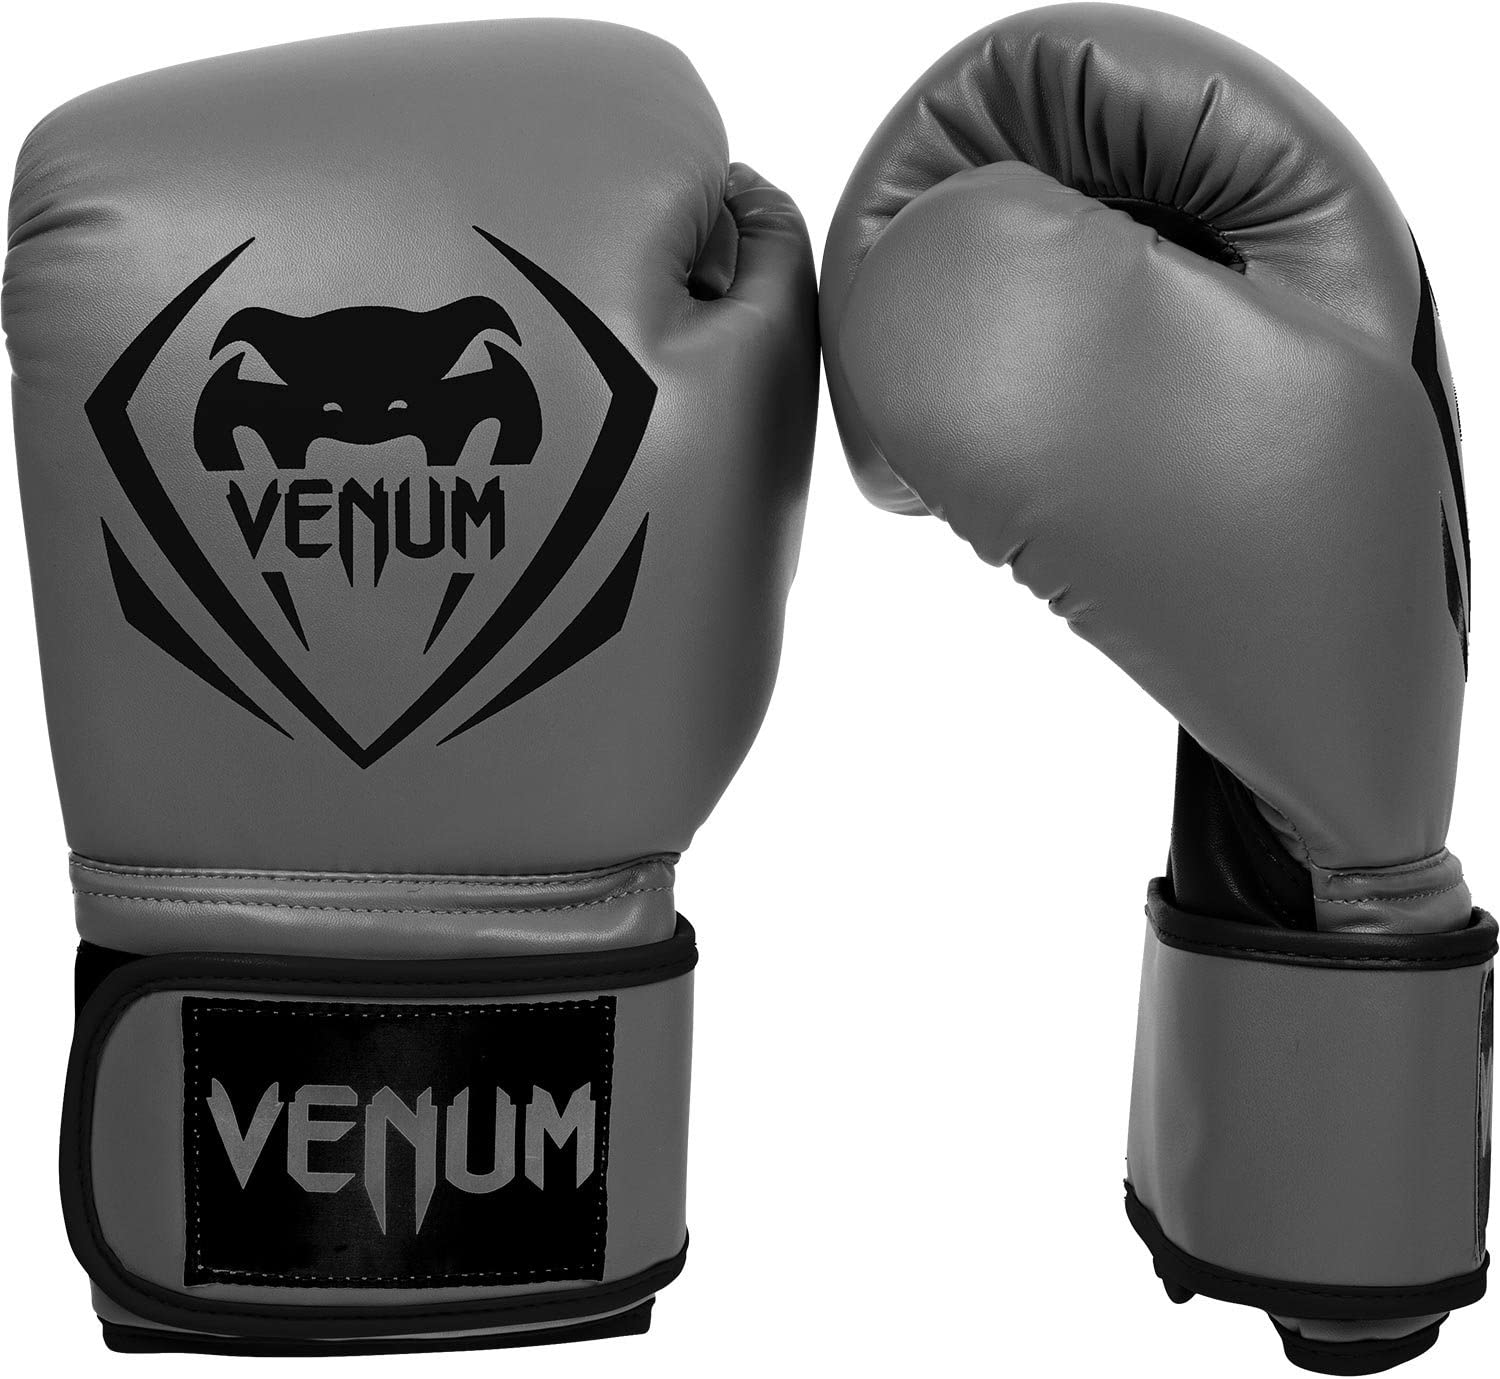 Venum Contender Boxing Gloves : Sports & Outdoors